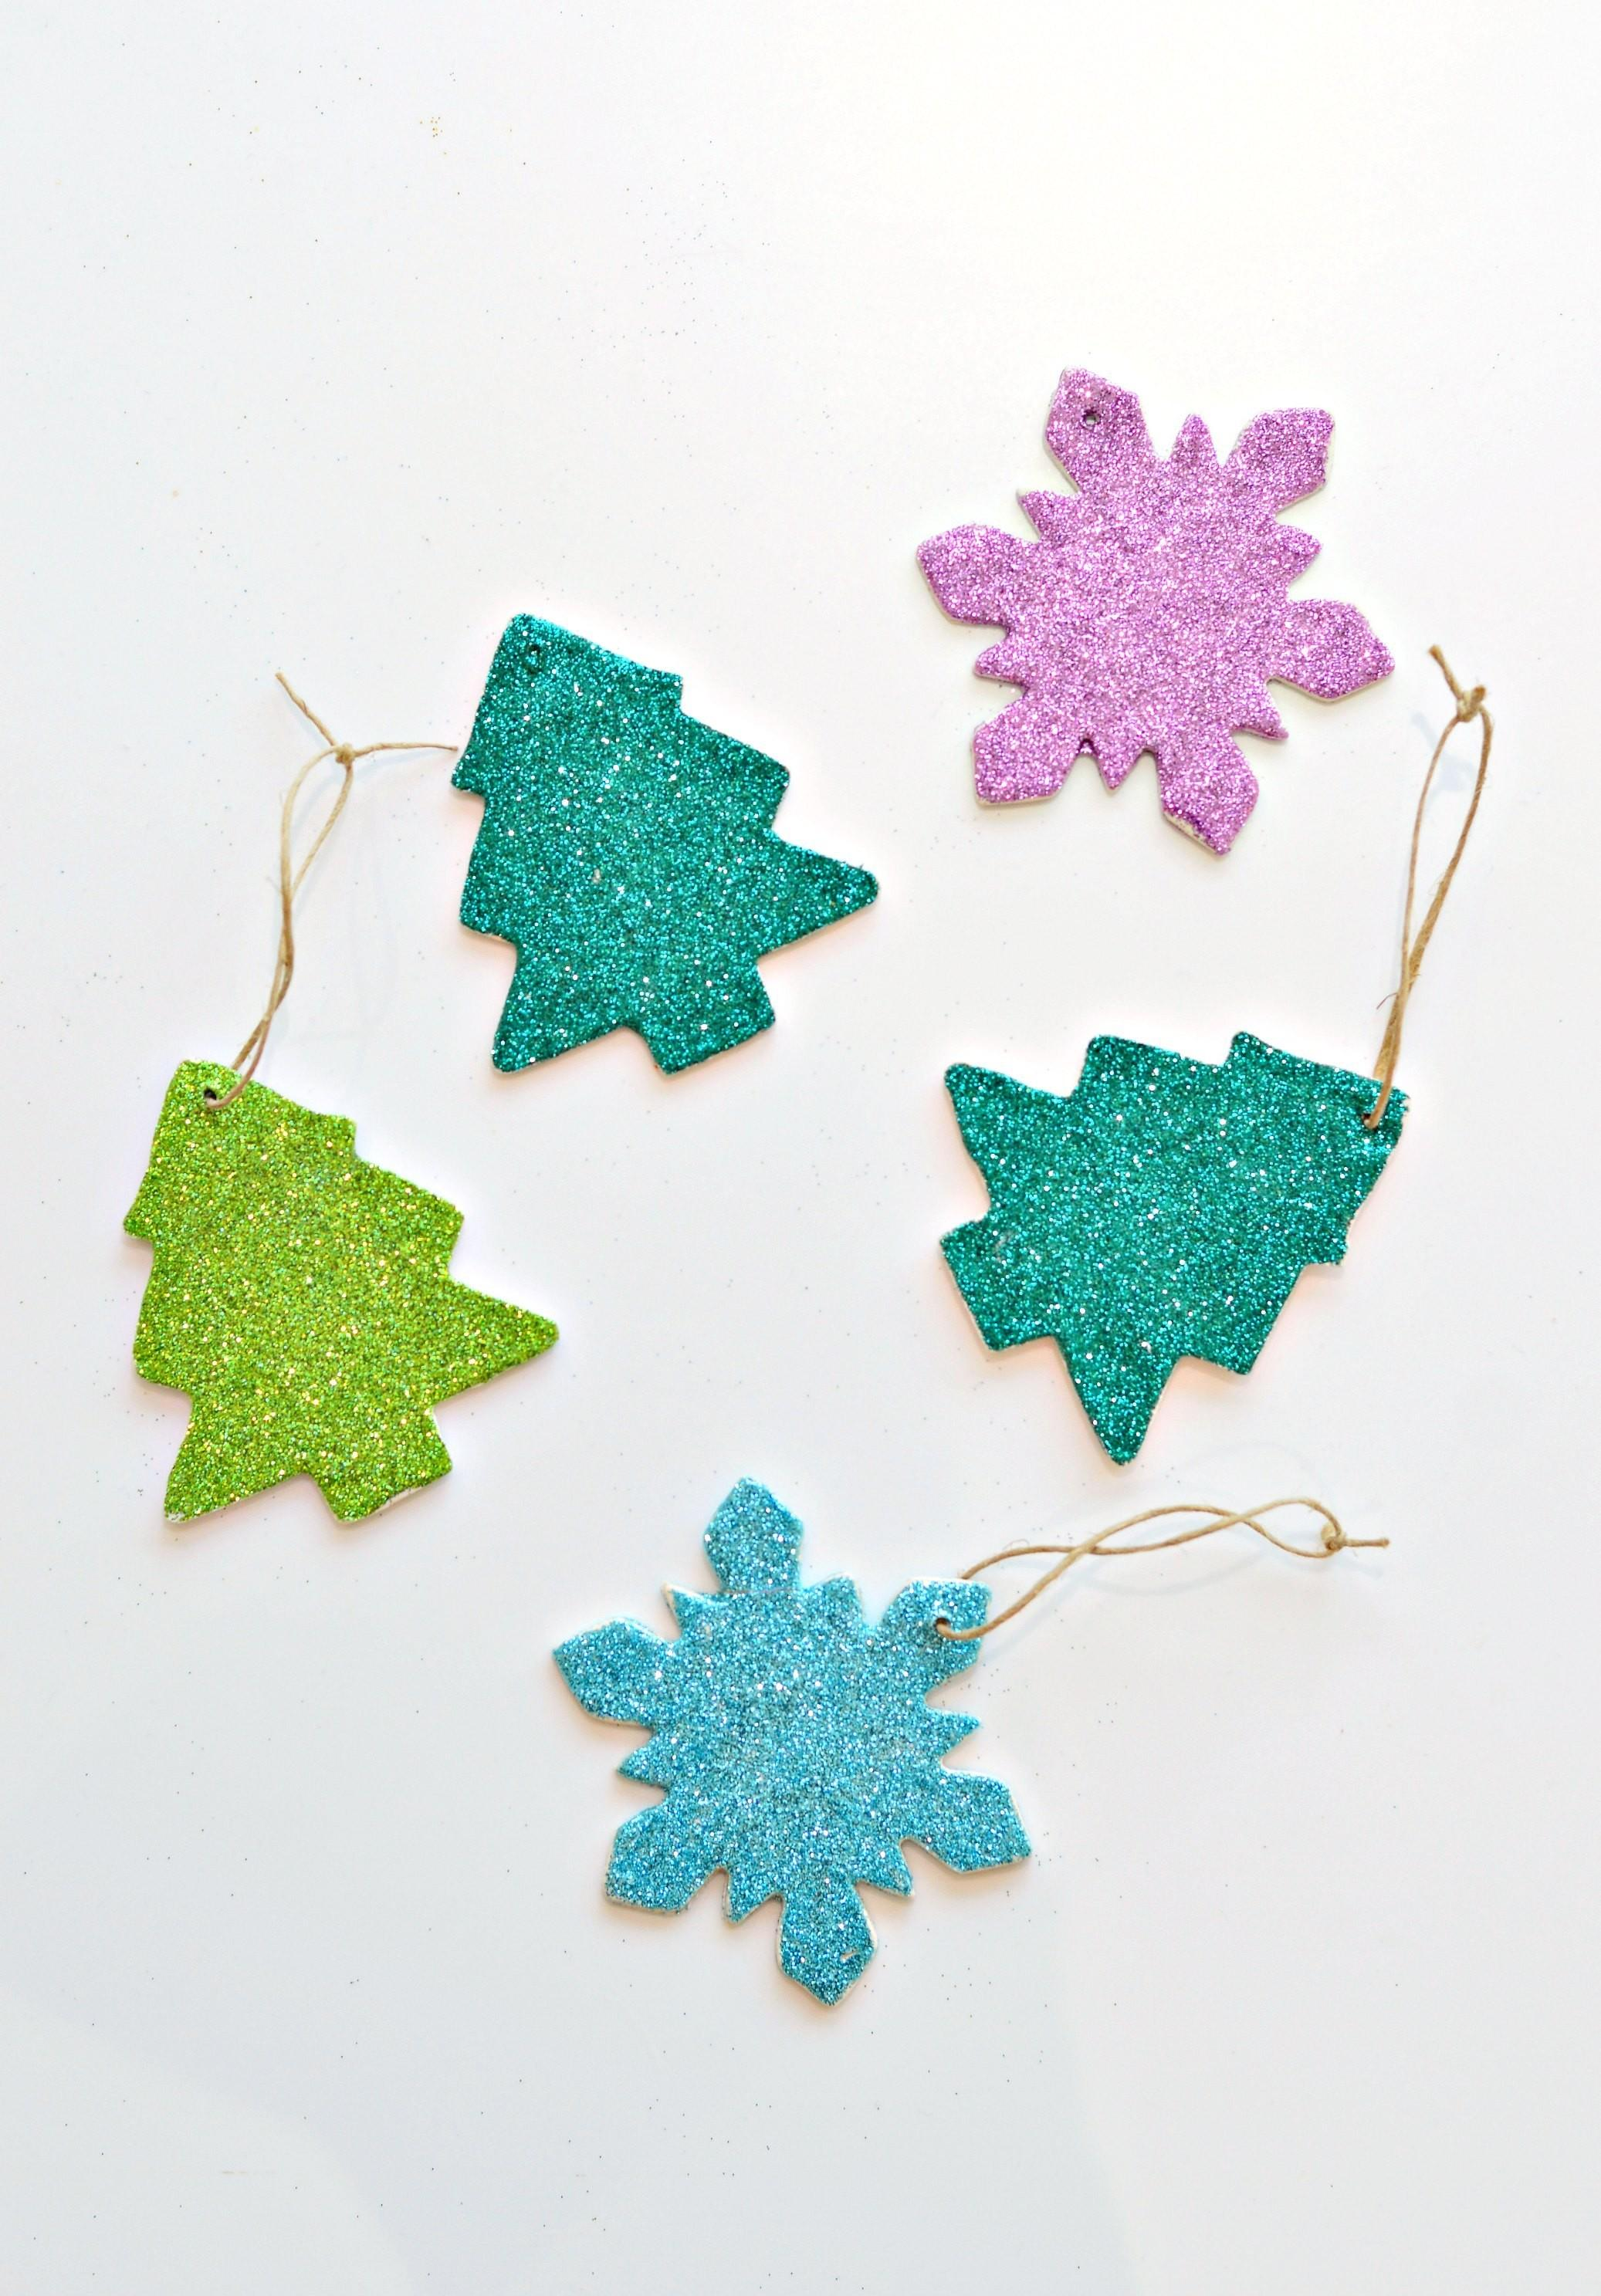 Diy Clay Glitter Christmas Ornaments Video